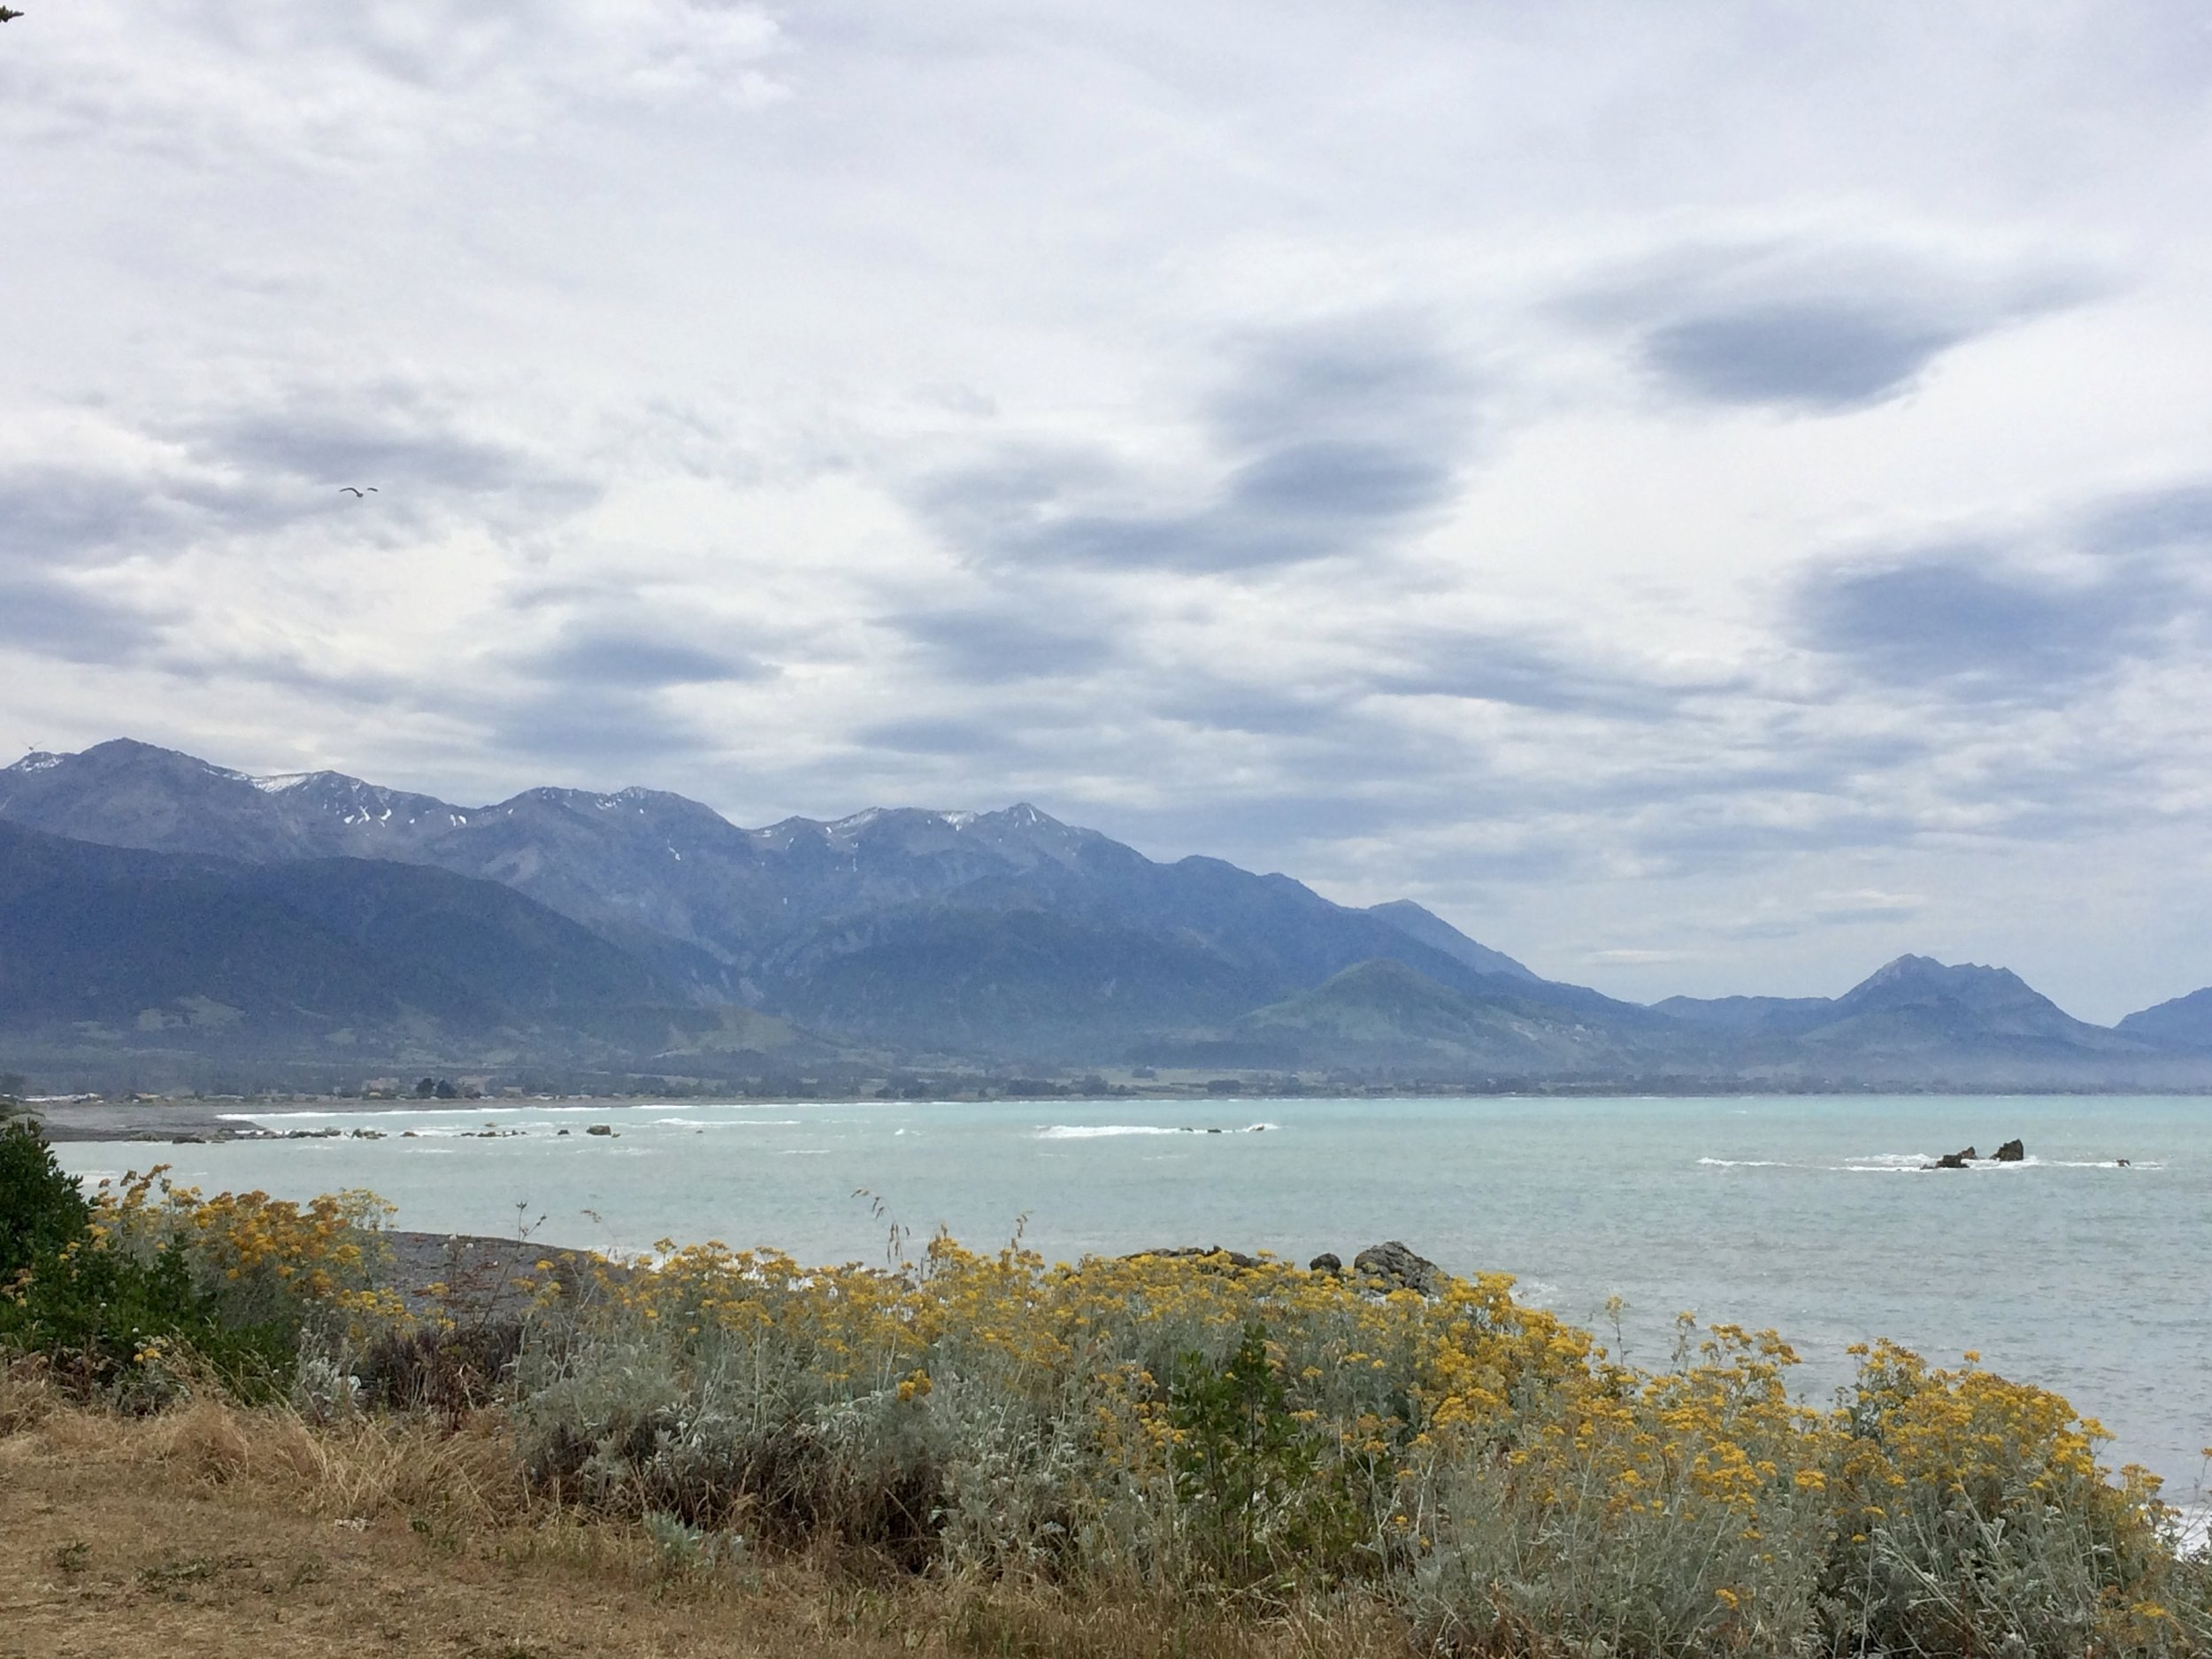 The mist and clouds cleared just enough to glimpse the mountains. Kaikoura; where the mountains meet the ocean.